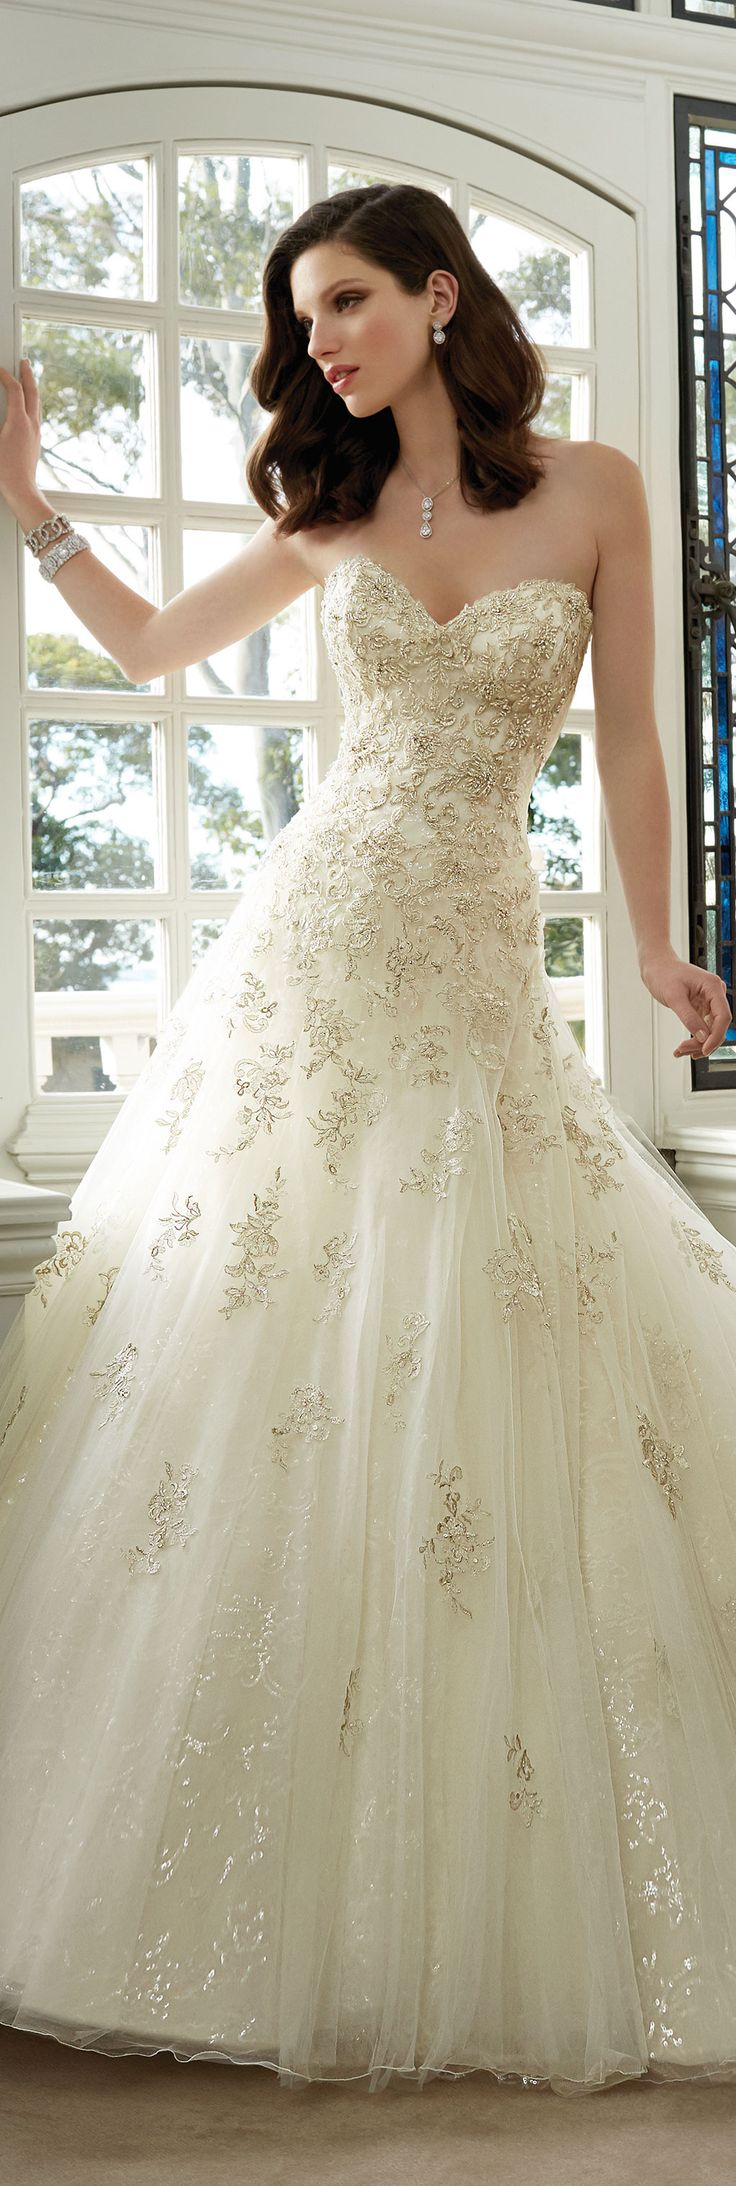 Best 25+ Wedding dress accessories ideas on Pinterest | Dress ...